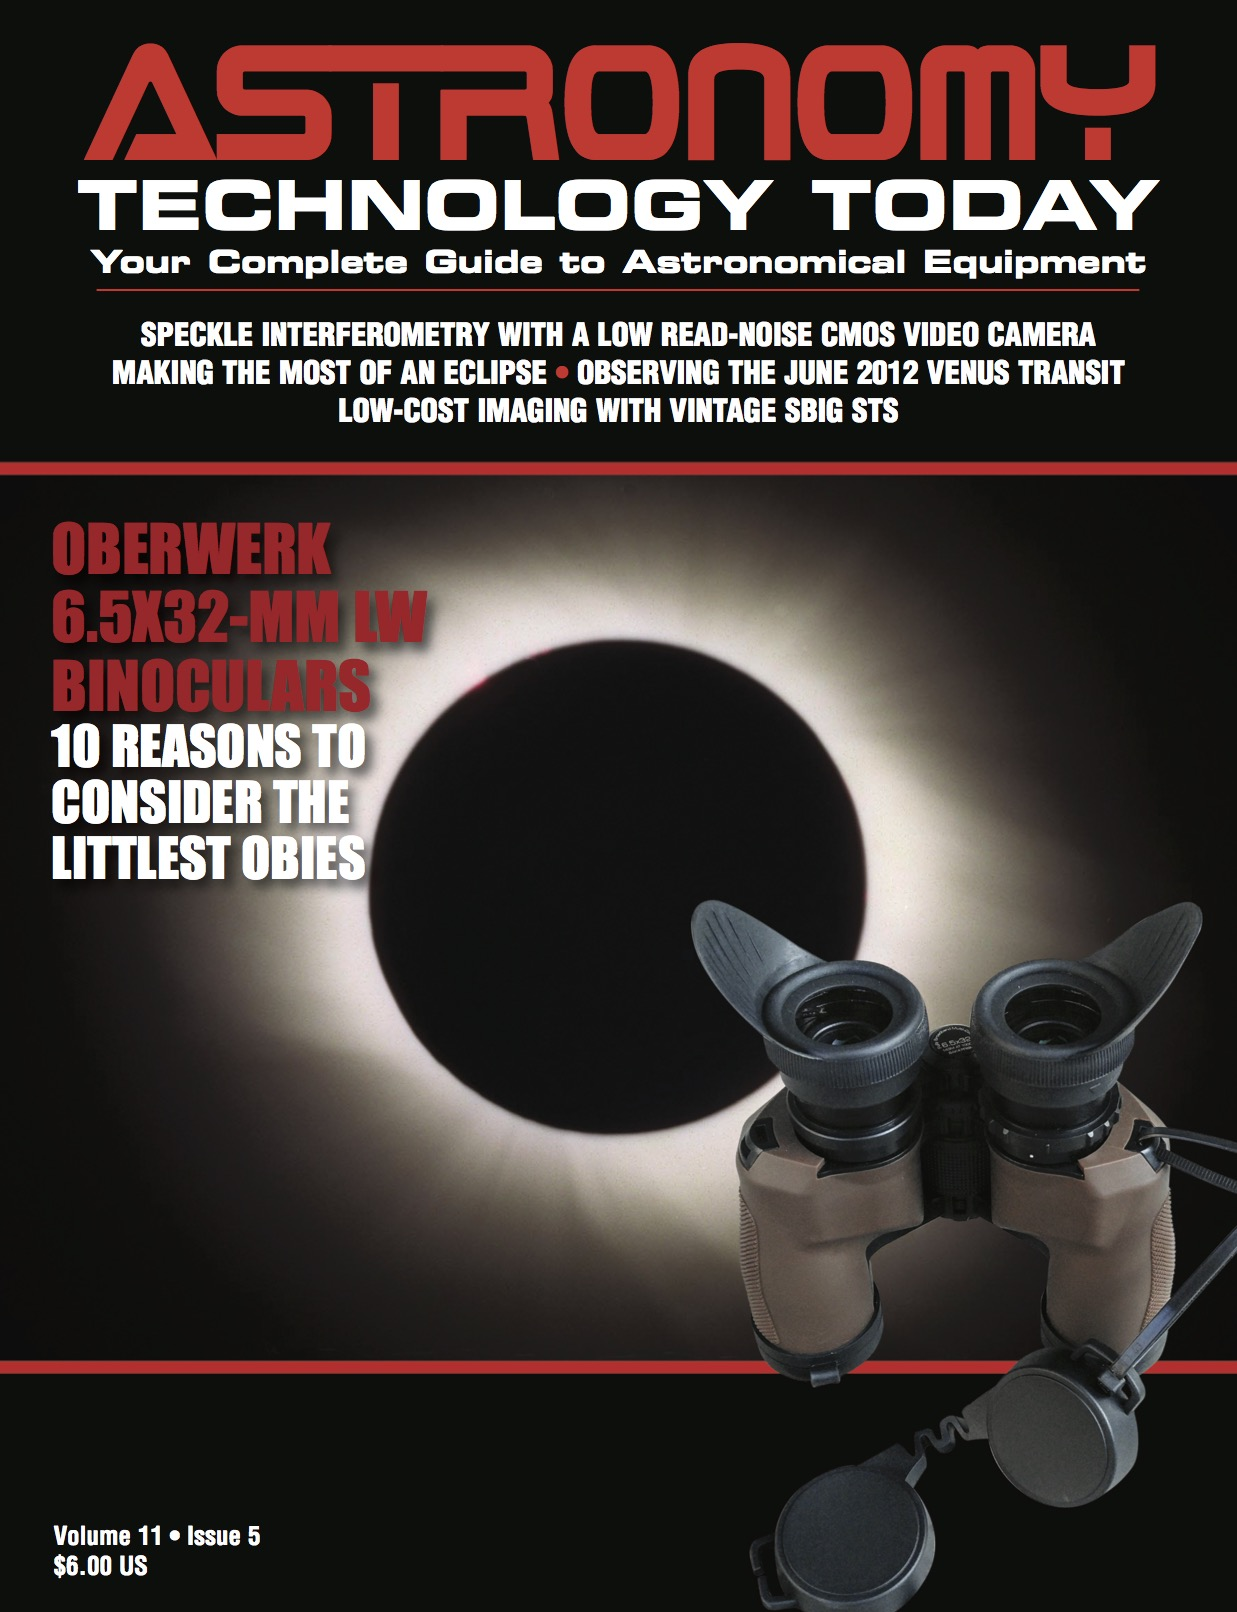 Astronomy Technology Today - Volume 11 Issue 5